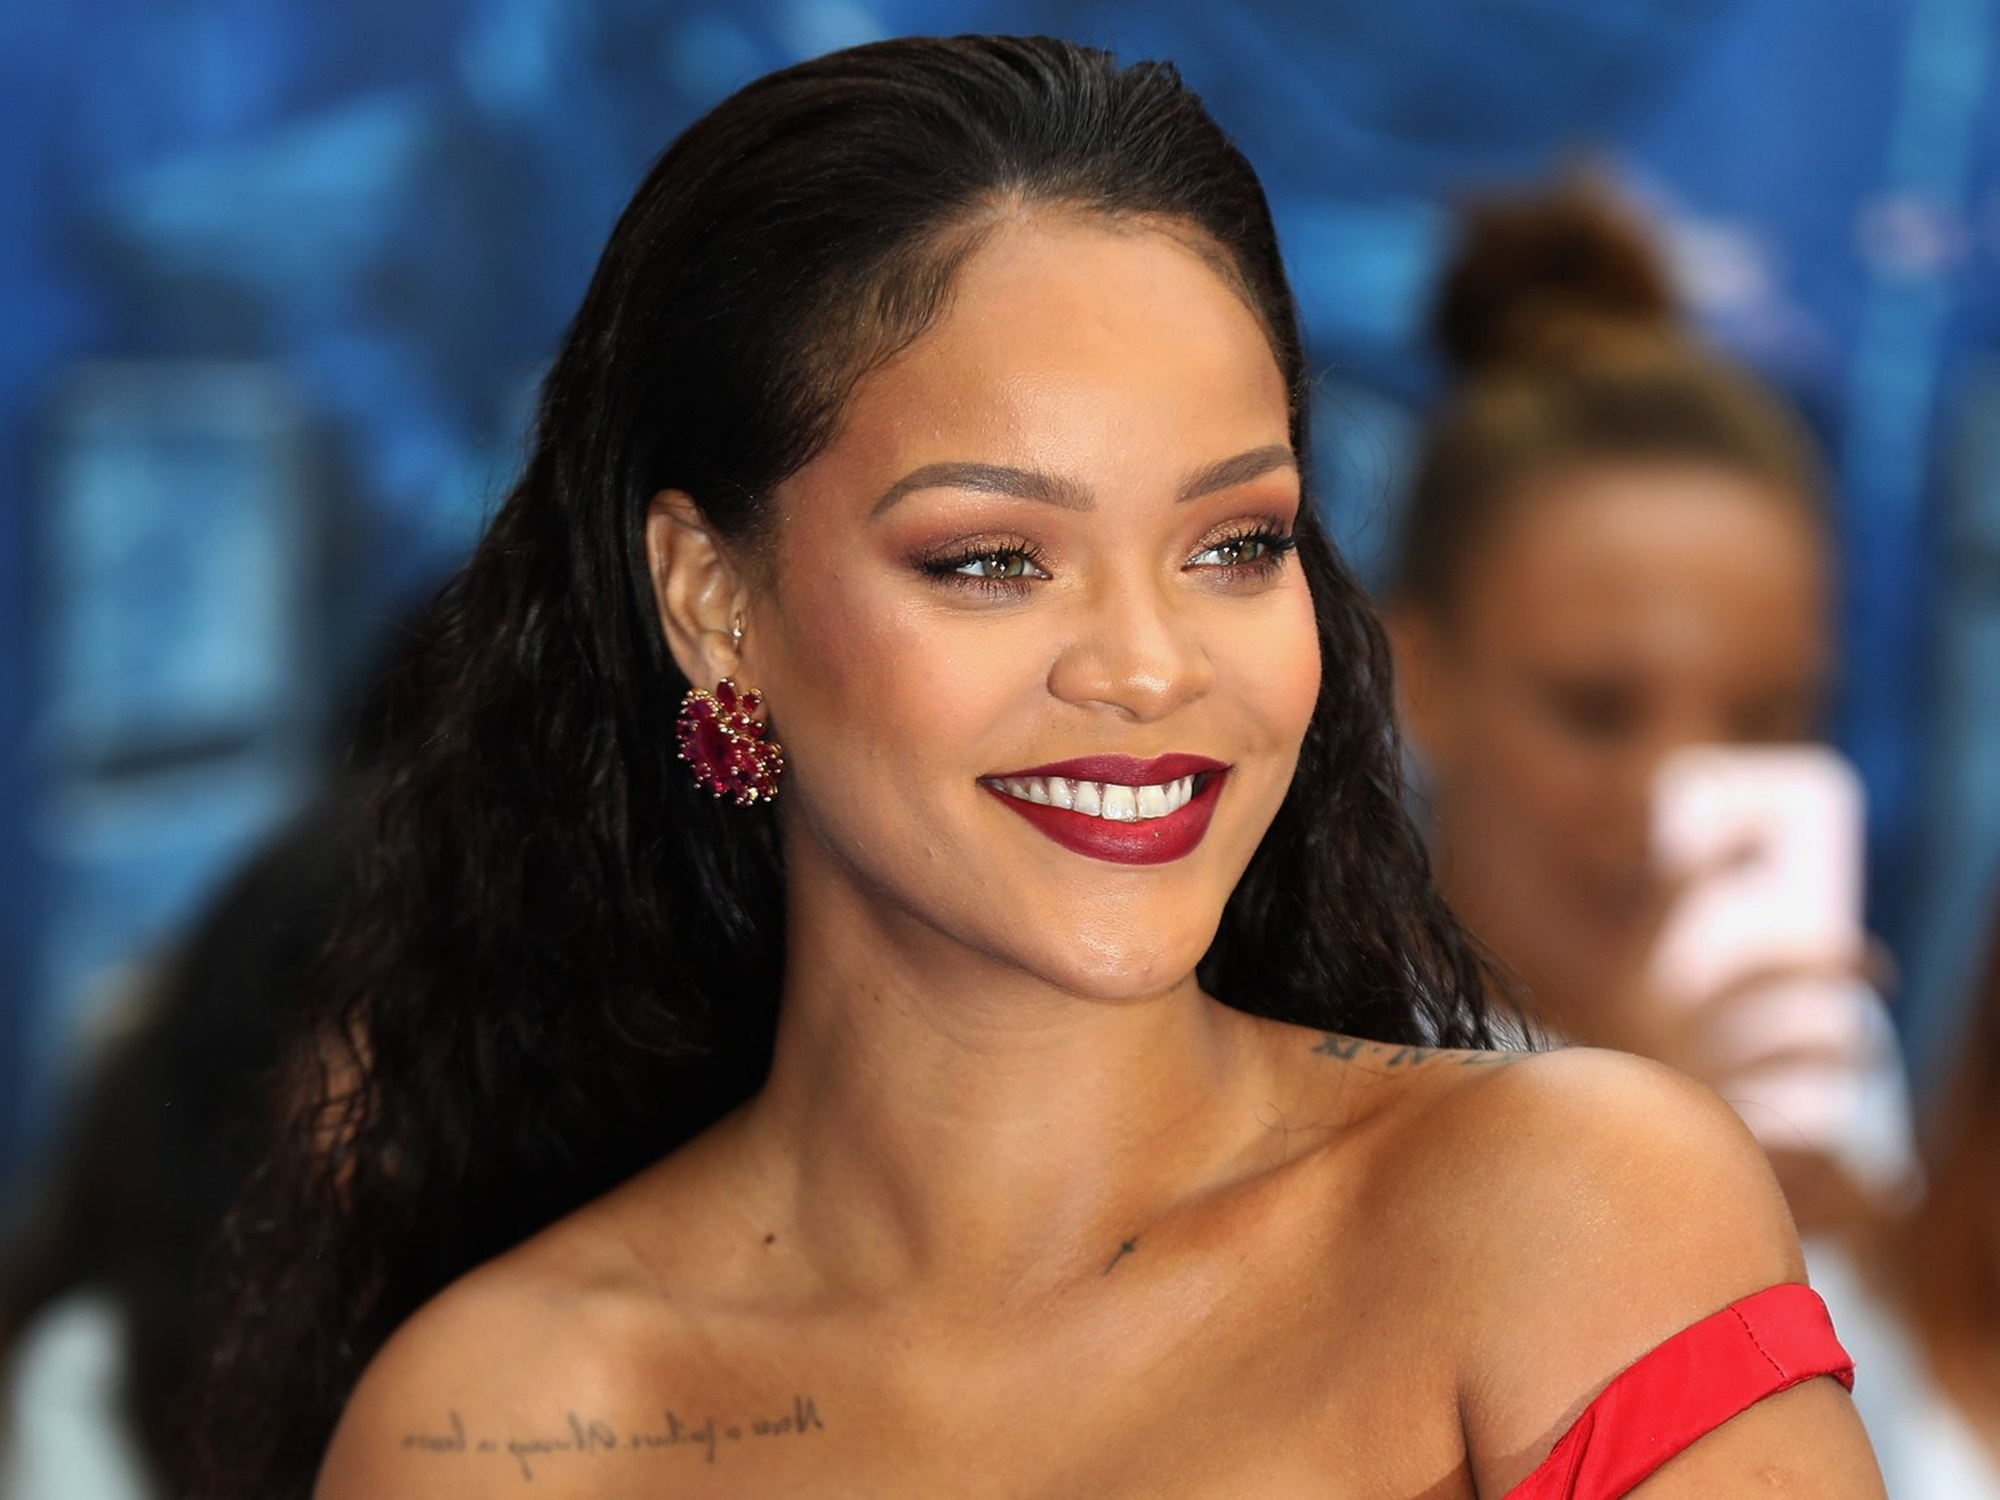 """""""rihanna-breaks-the-internet-in-tight-black-outfit-playing-a-maid-as-she-pay-tribute-to-joseline-hernandez-in-viral-video"""""""